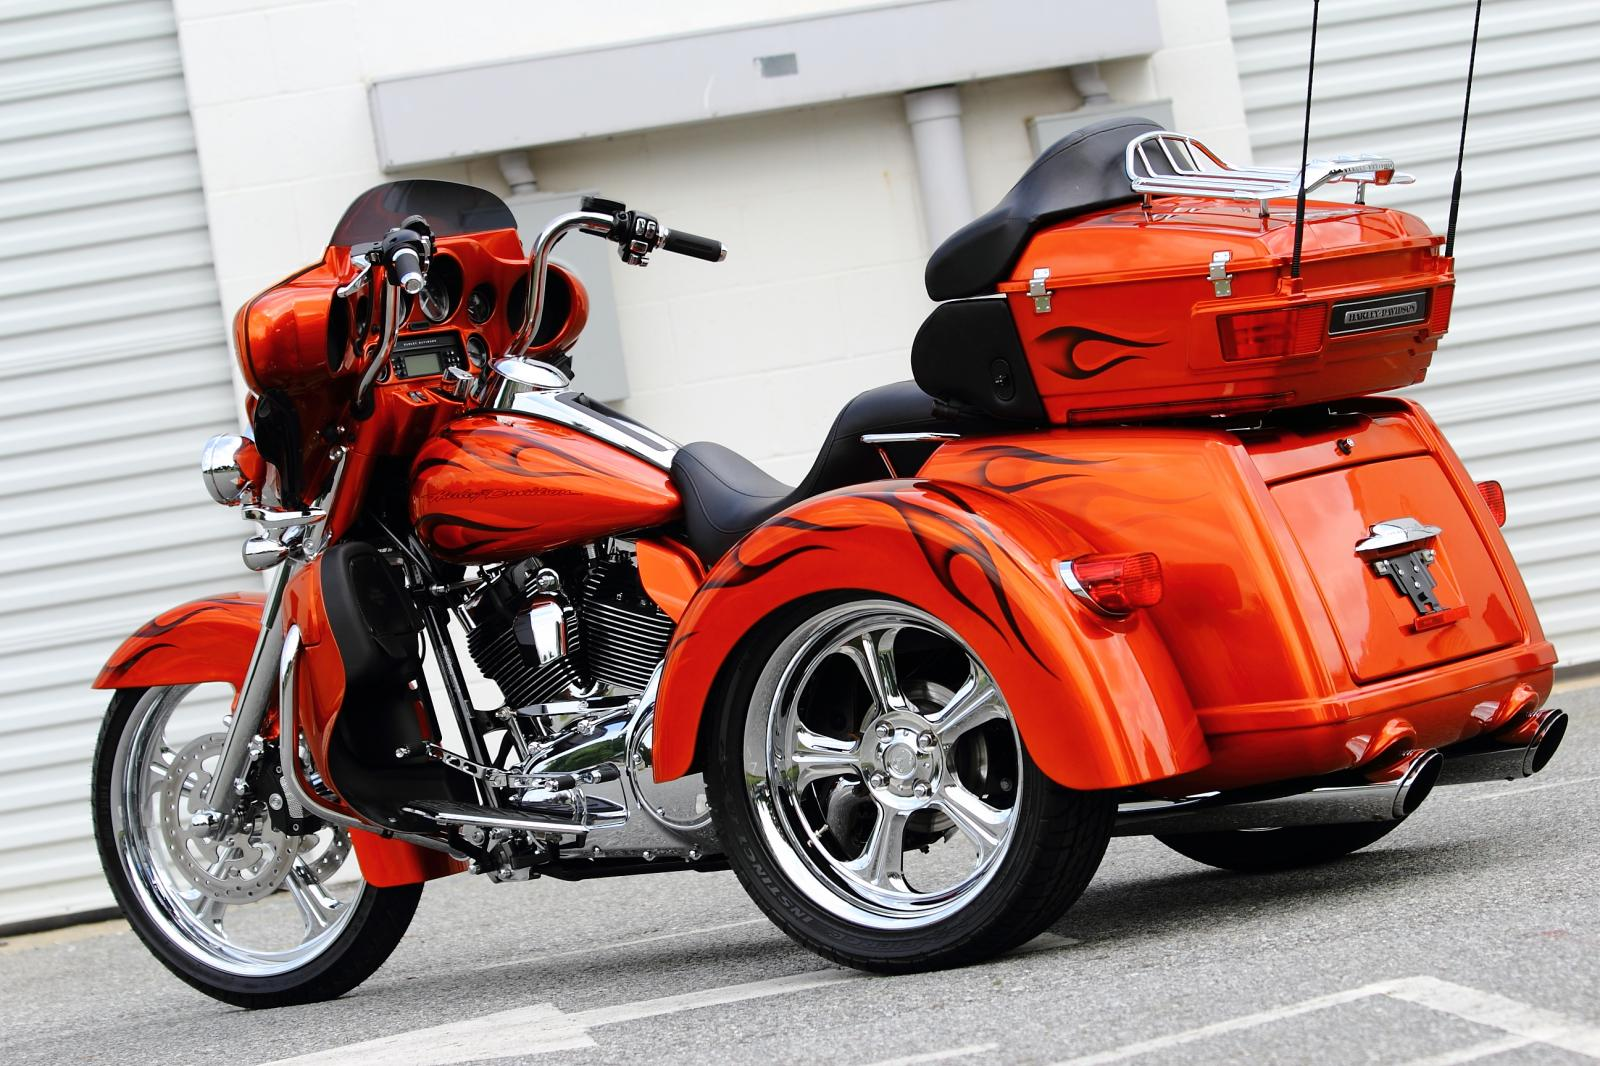 2011 harley davidson flhxxx street glide trike moto zombdrive com. Black Bedroom Furniture Sets. Home Design Ideas